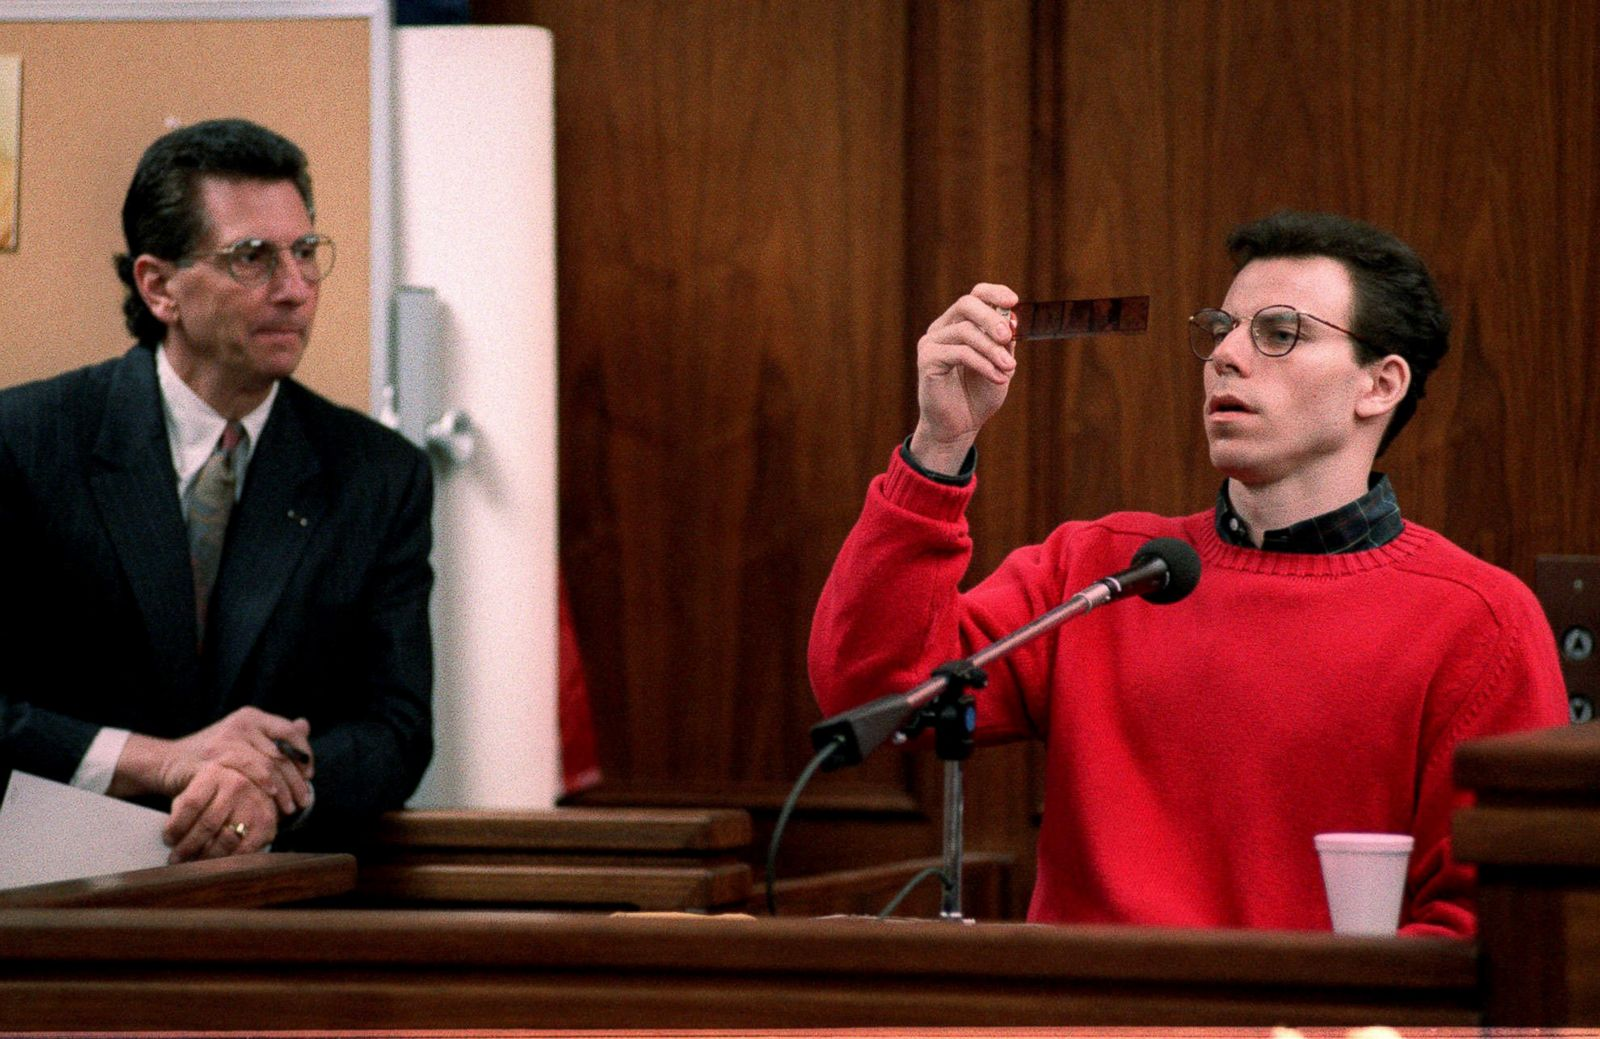 The Menendez brothers: A look at their childhood, the ...